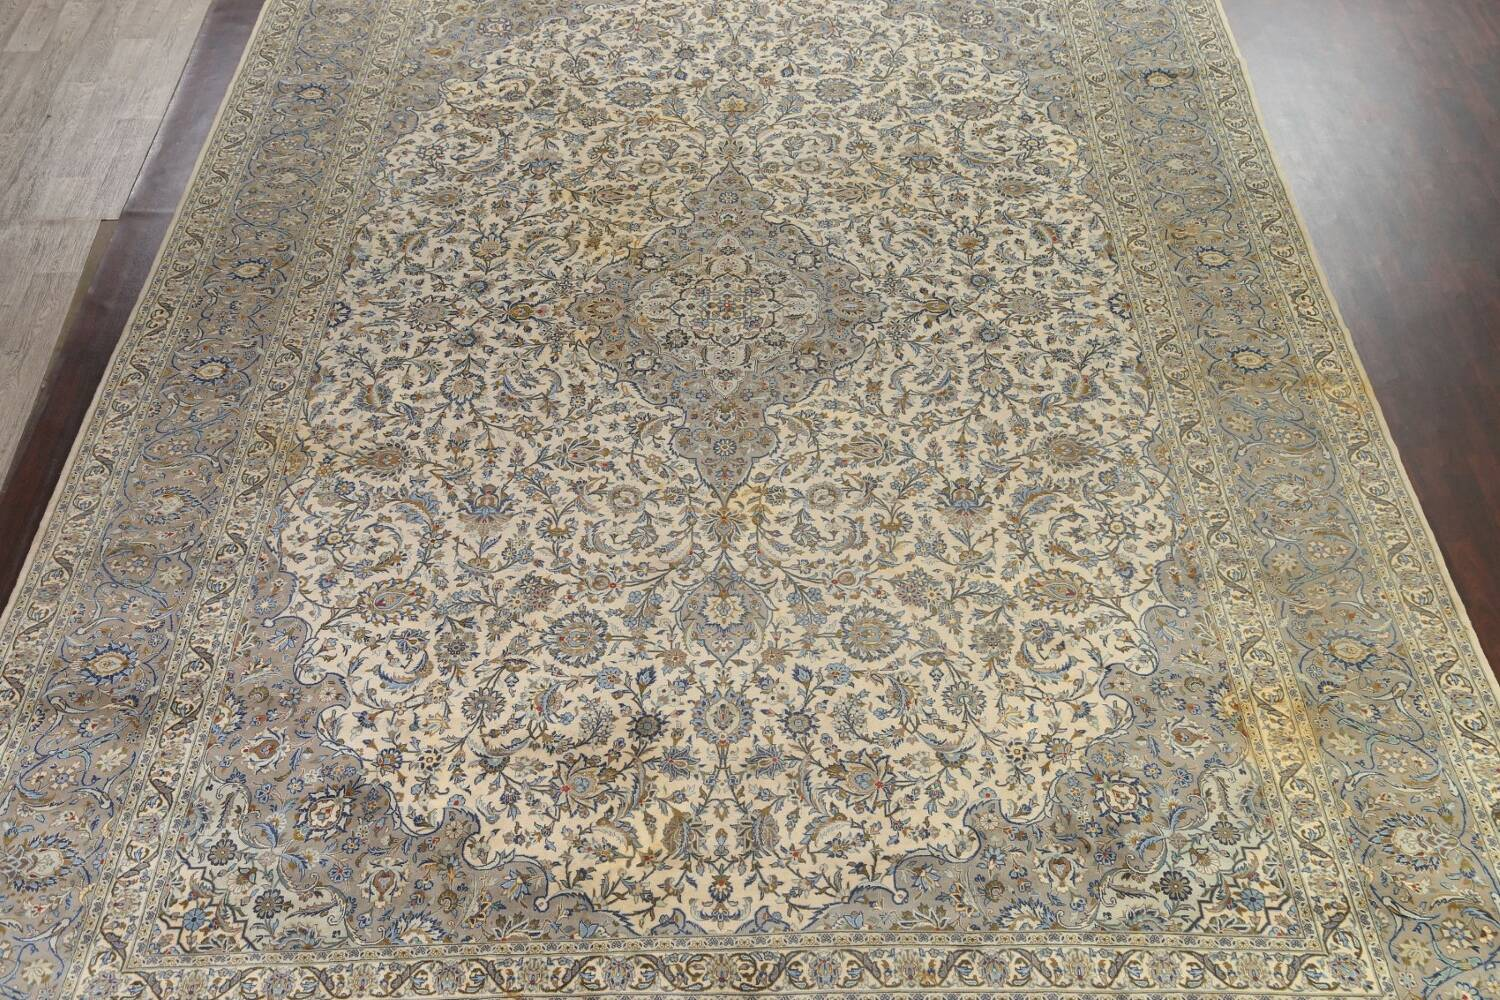 Traditional Floral Kashan Persian Area Rug 13x20 image 3